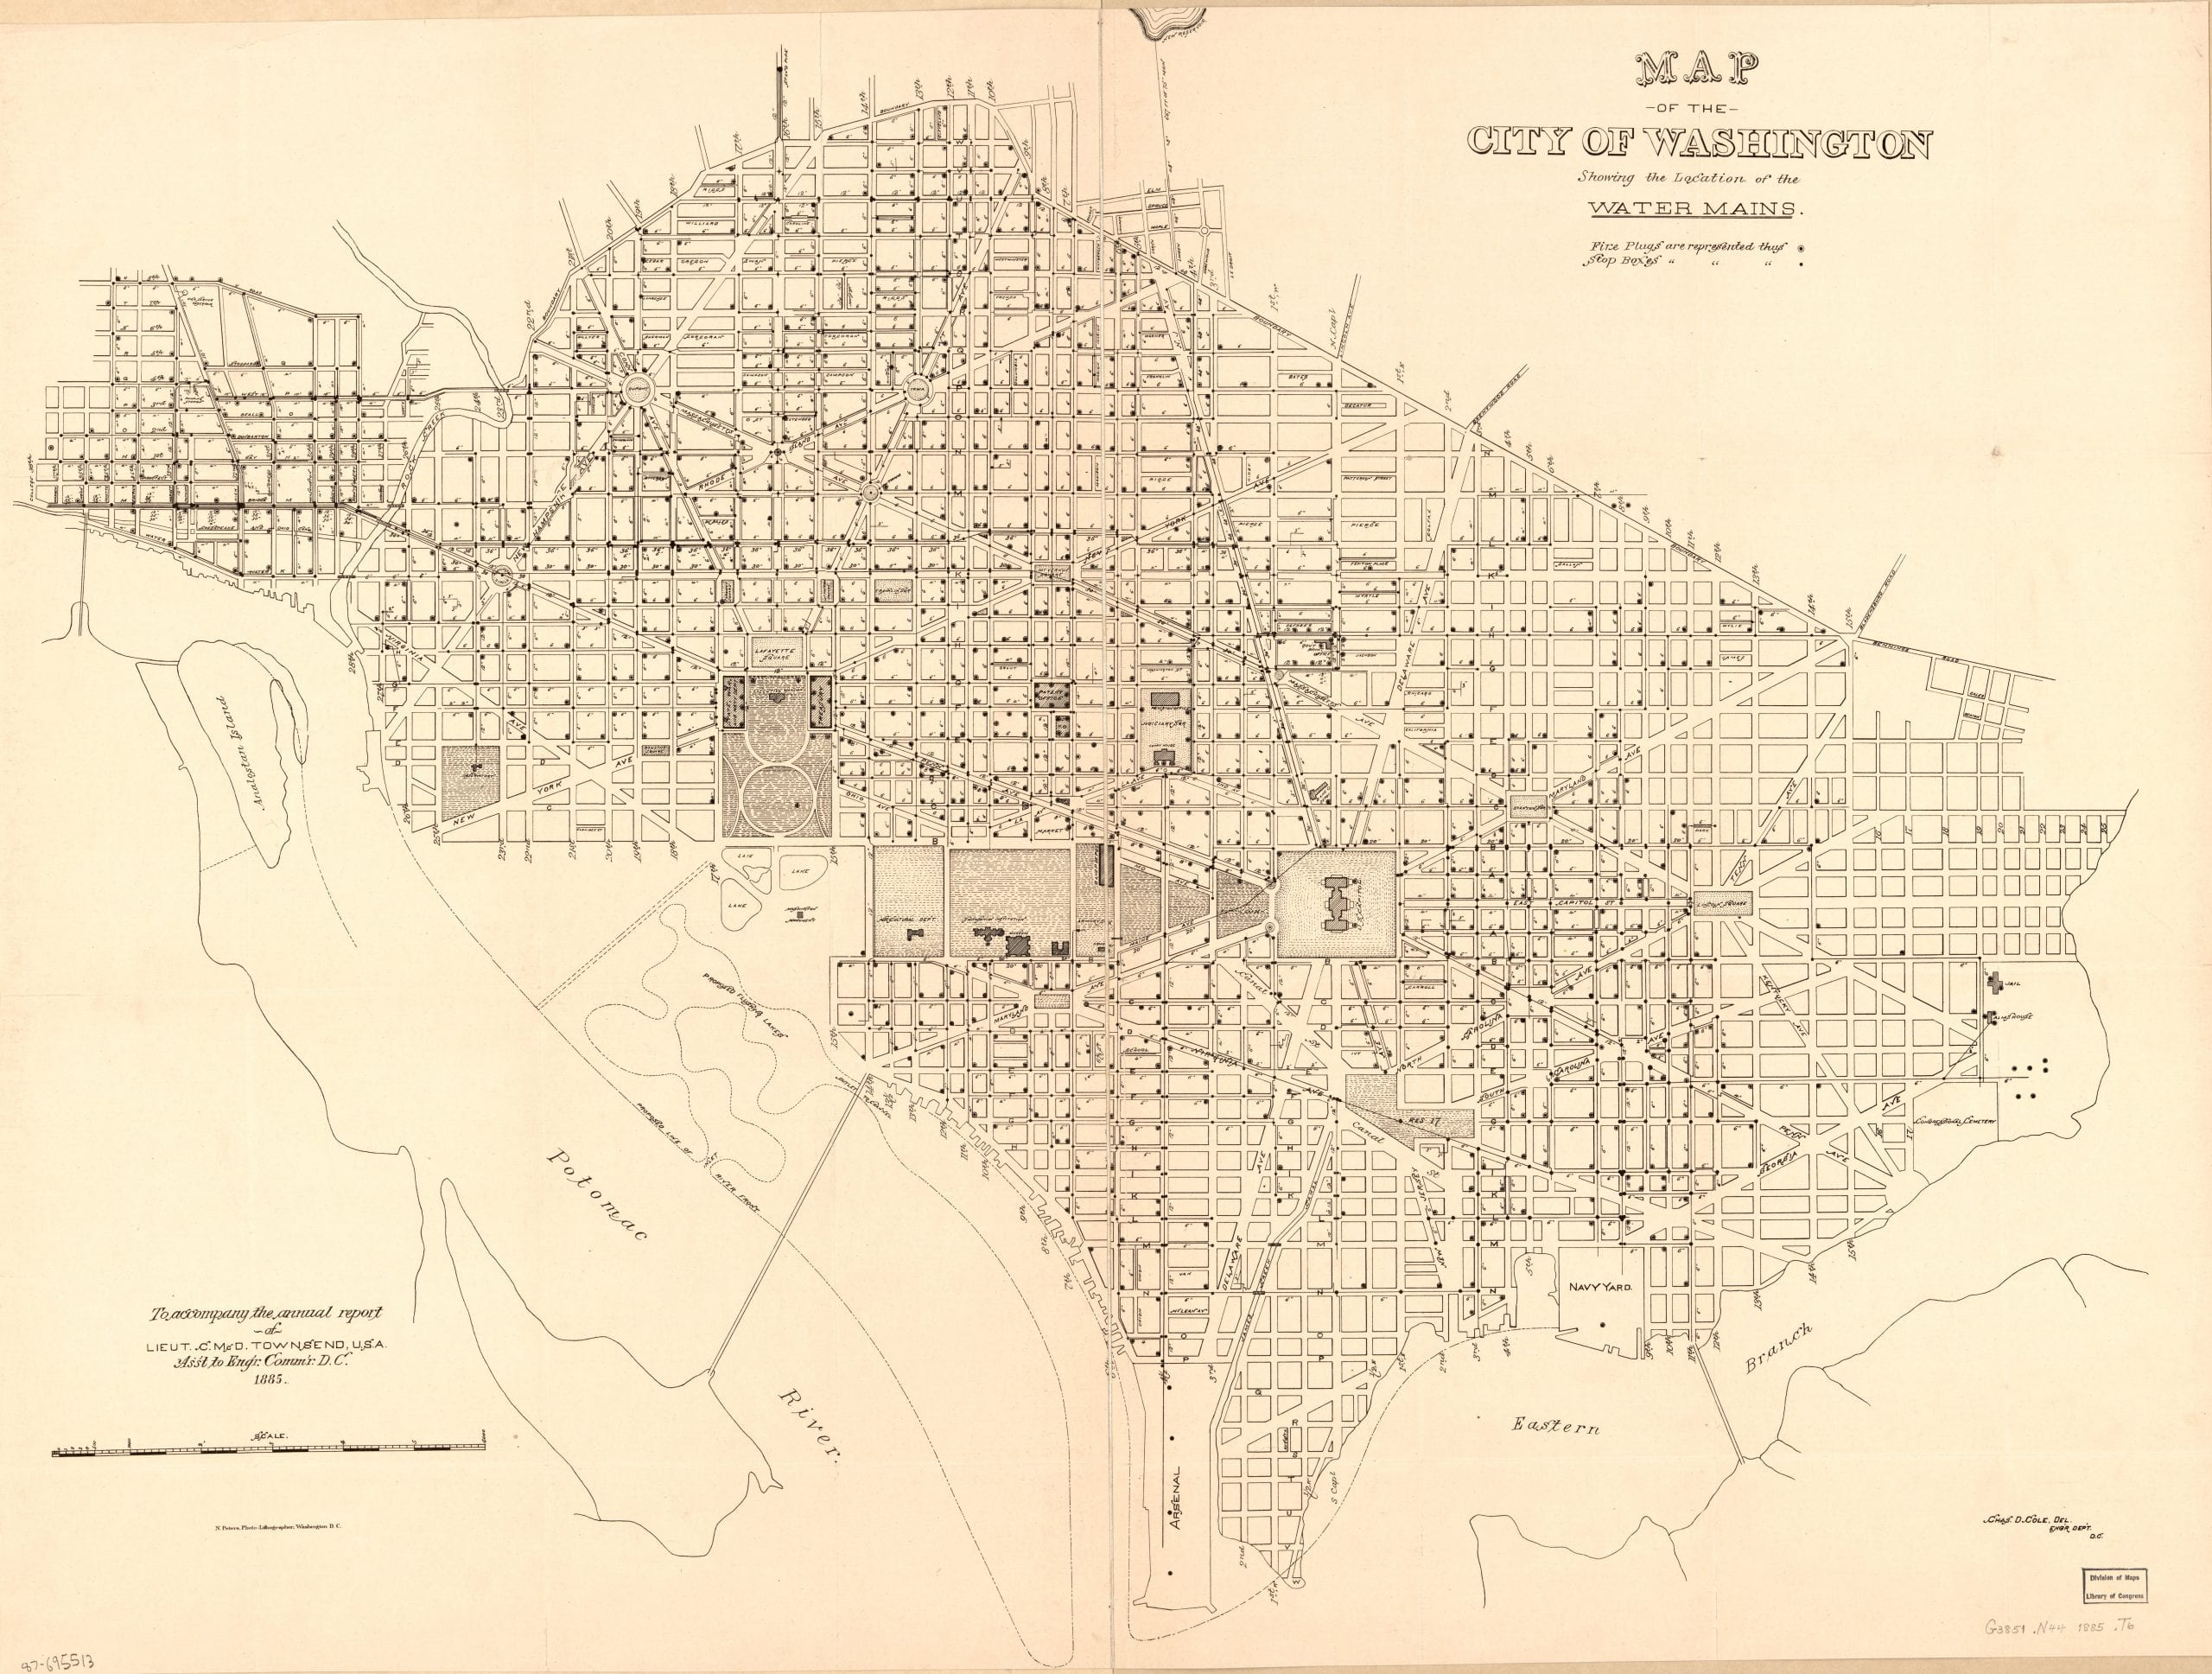 Map of the city of Washington showing the location of the water mains in 1885